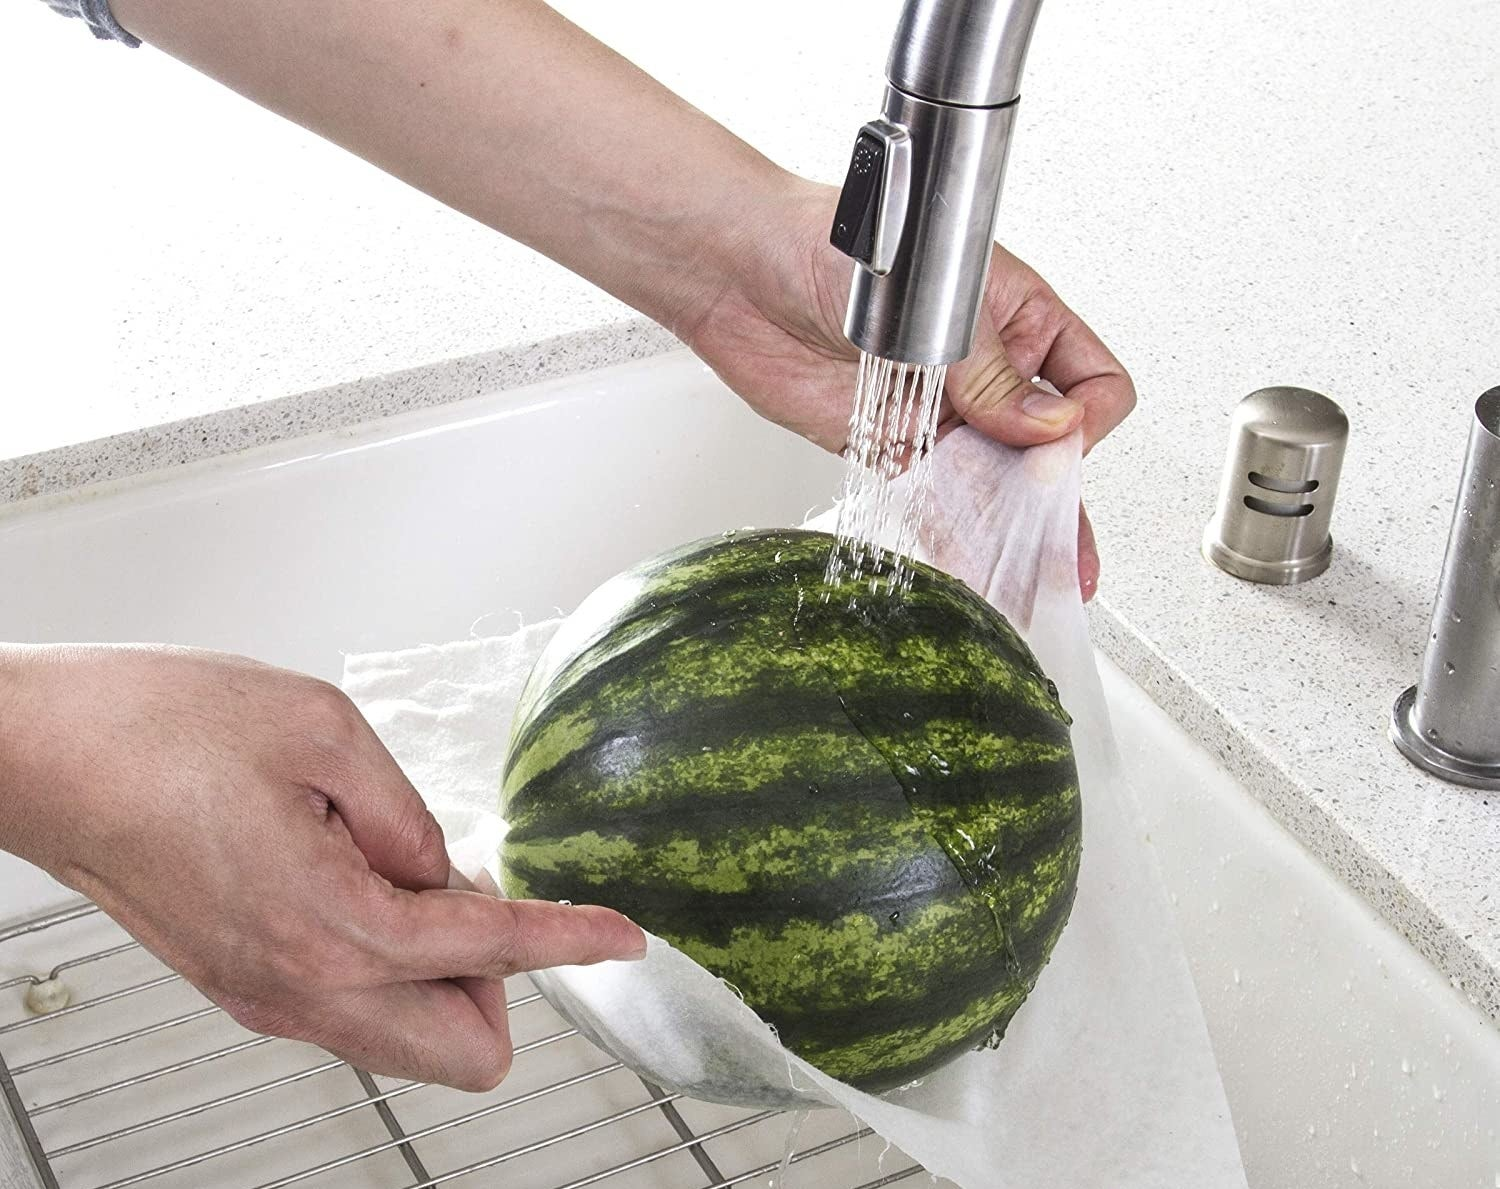 Model's hands cleaning a watermelon held by a single bamboo towel